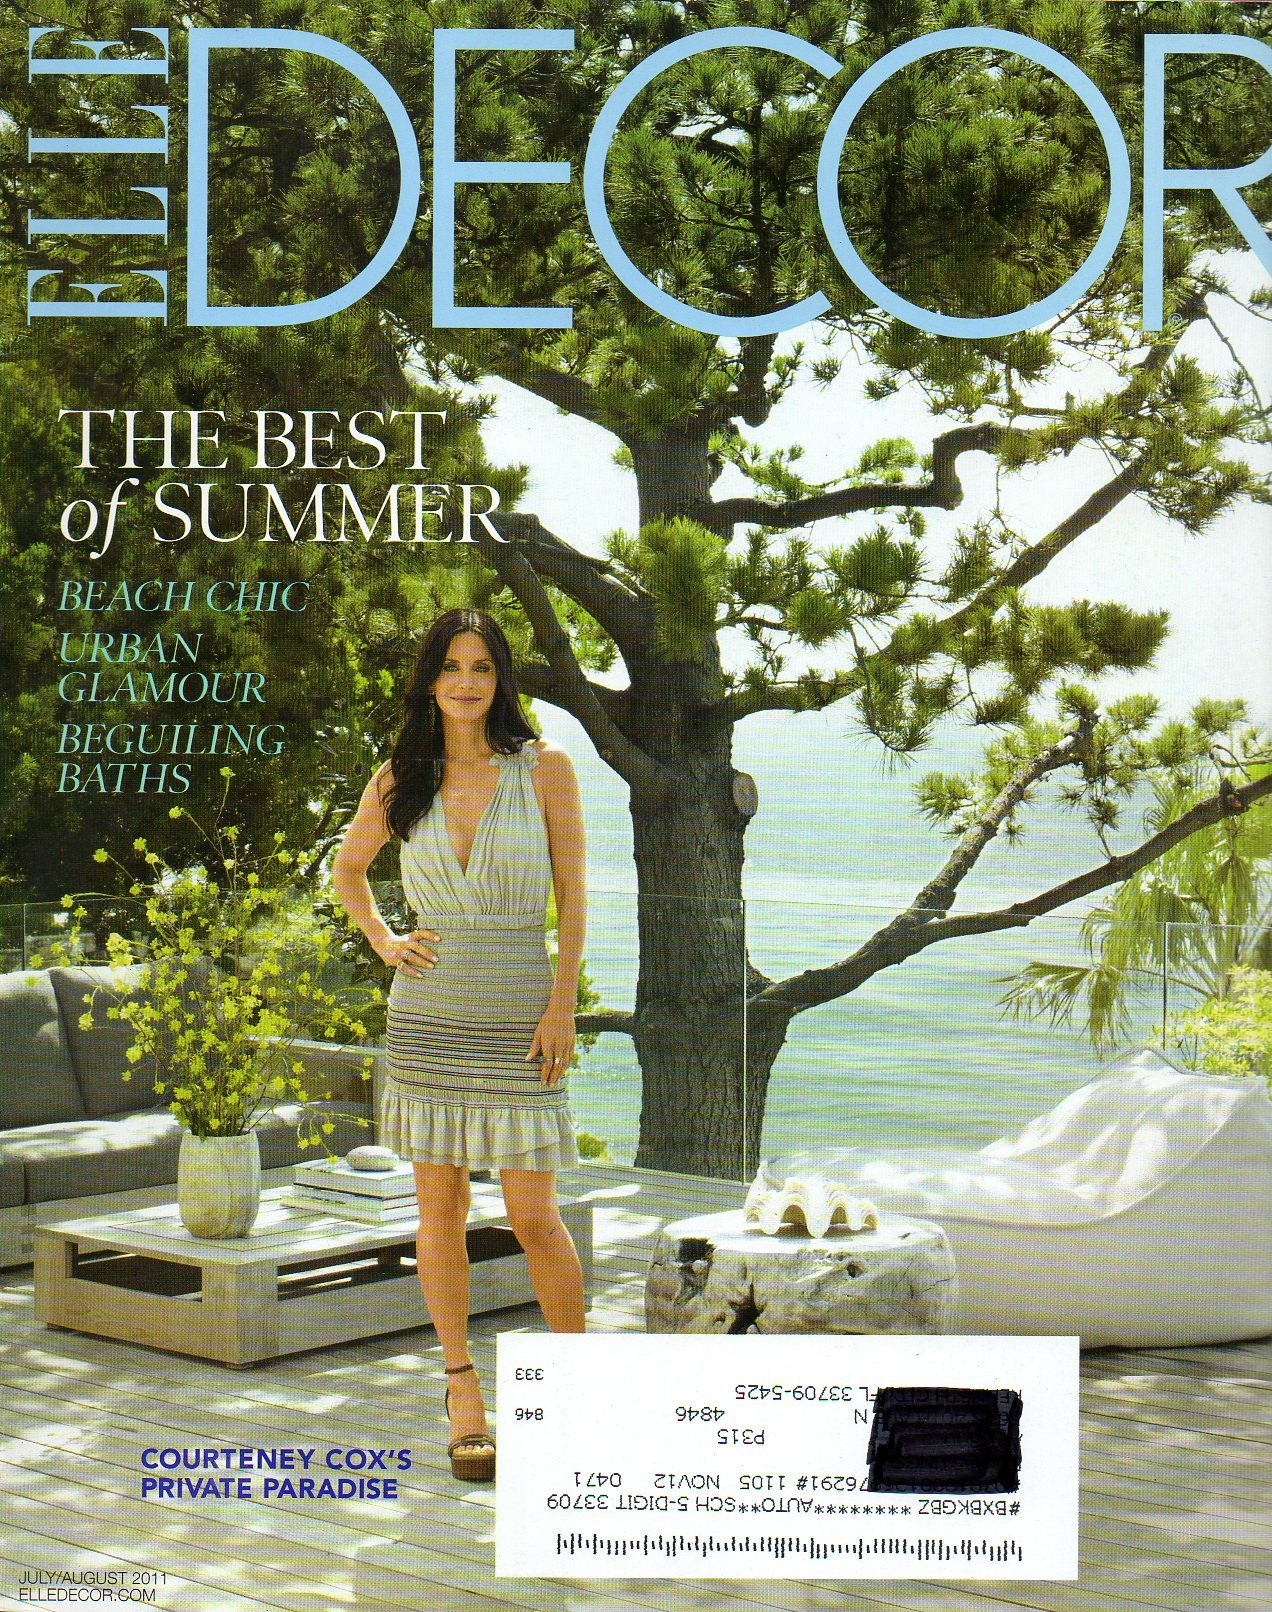 Elle Decor the Best of Summer July / August 2011 (Cover) Courteney Cox's Private Paradise PDF